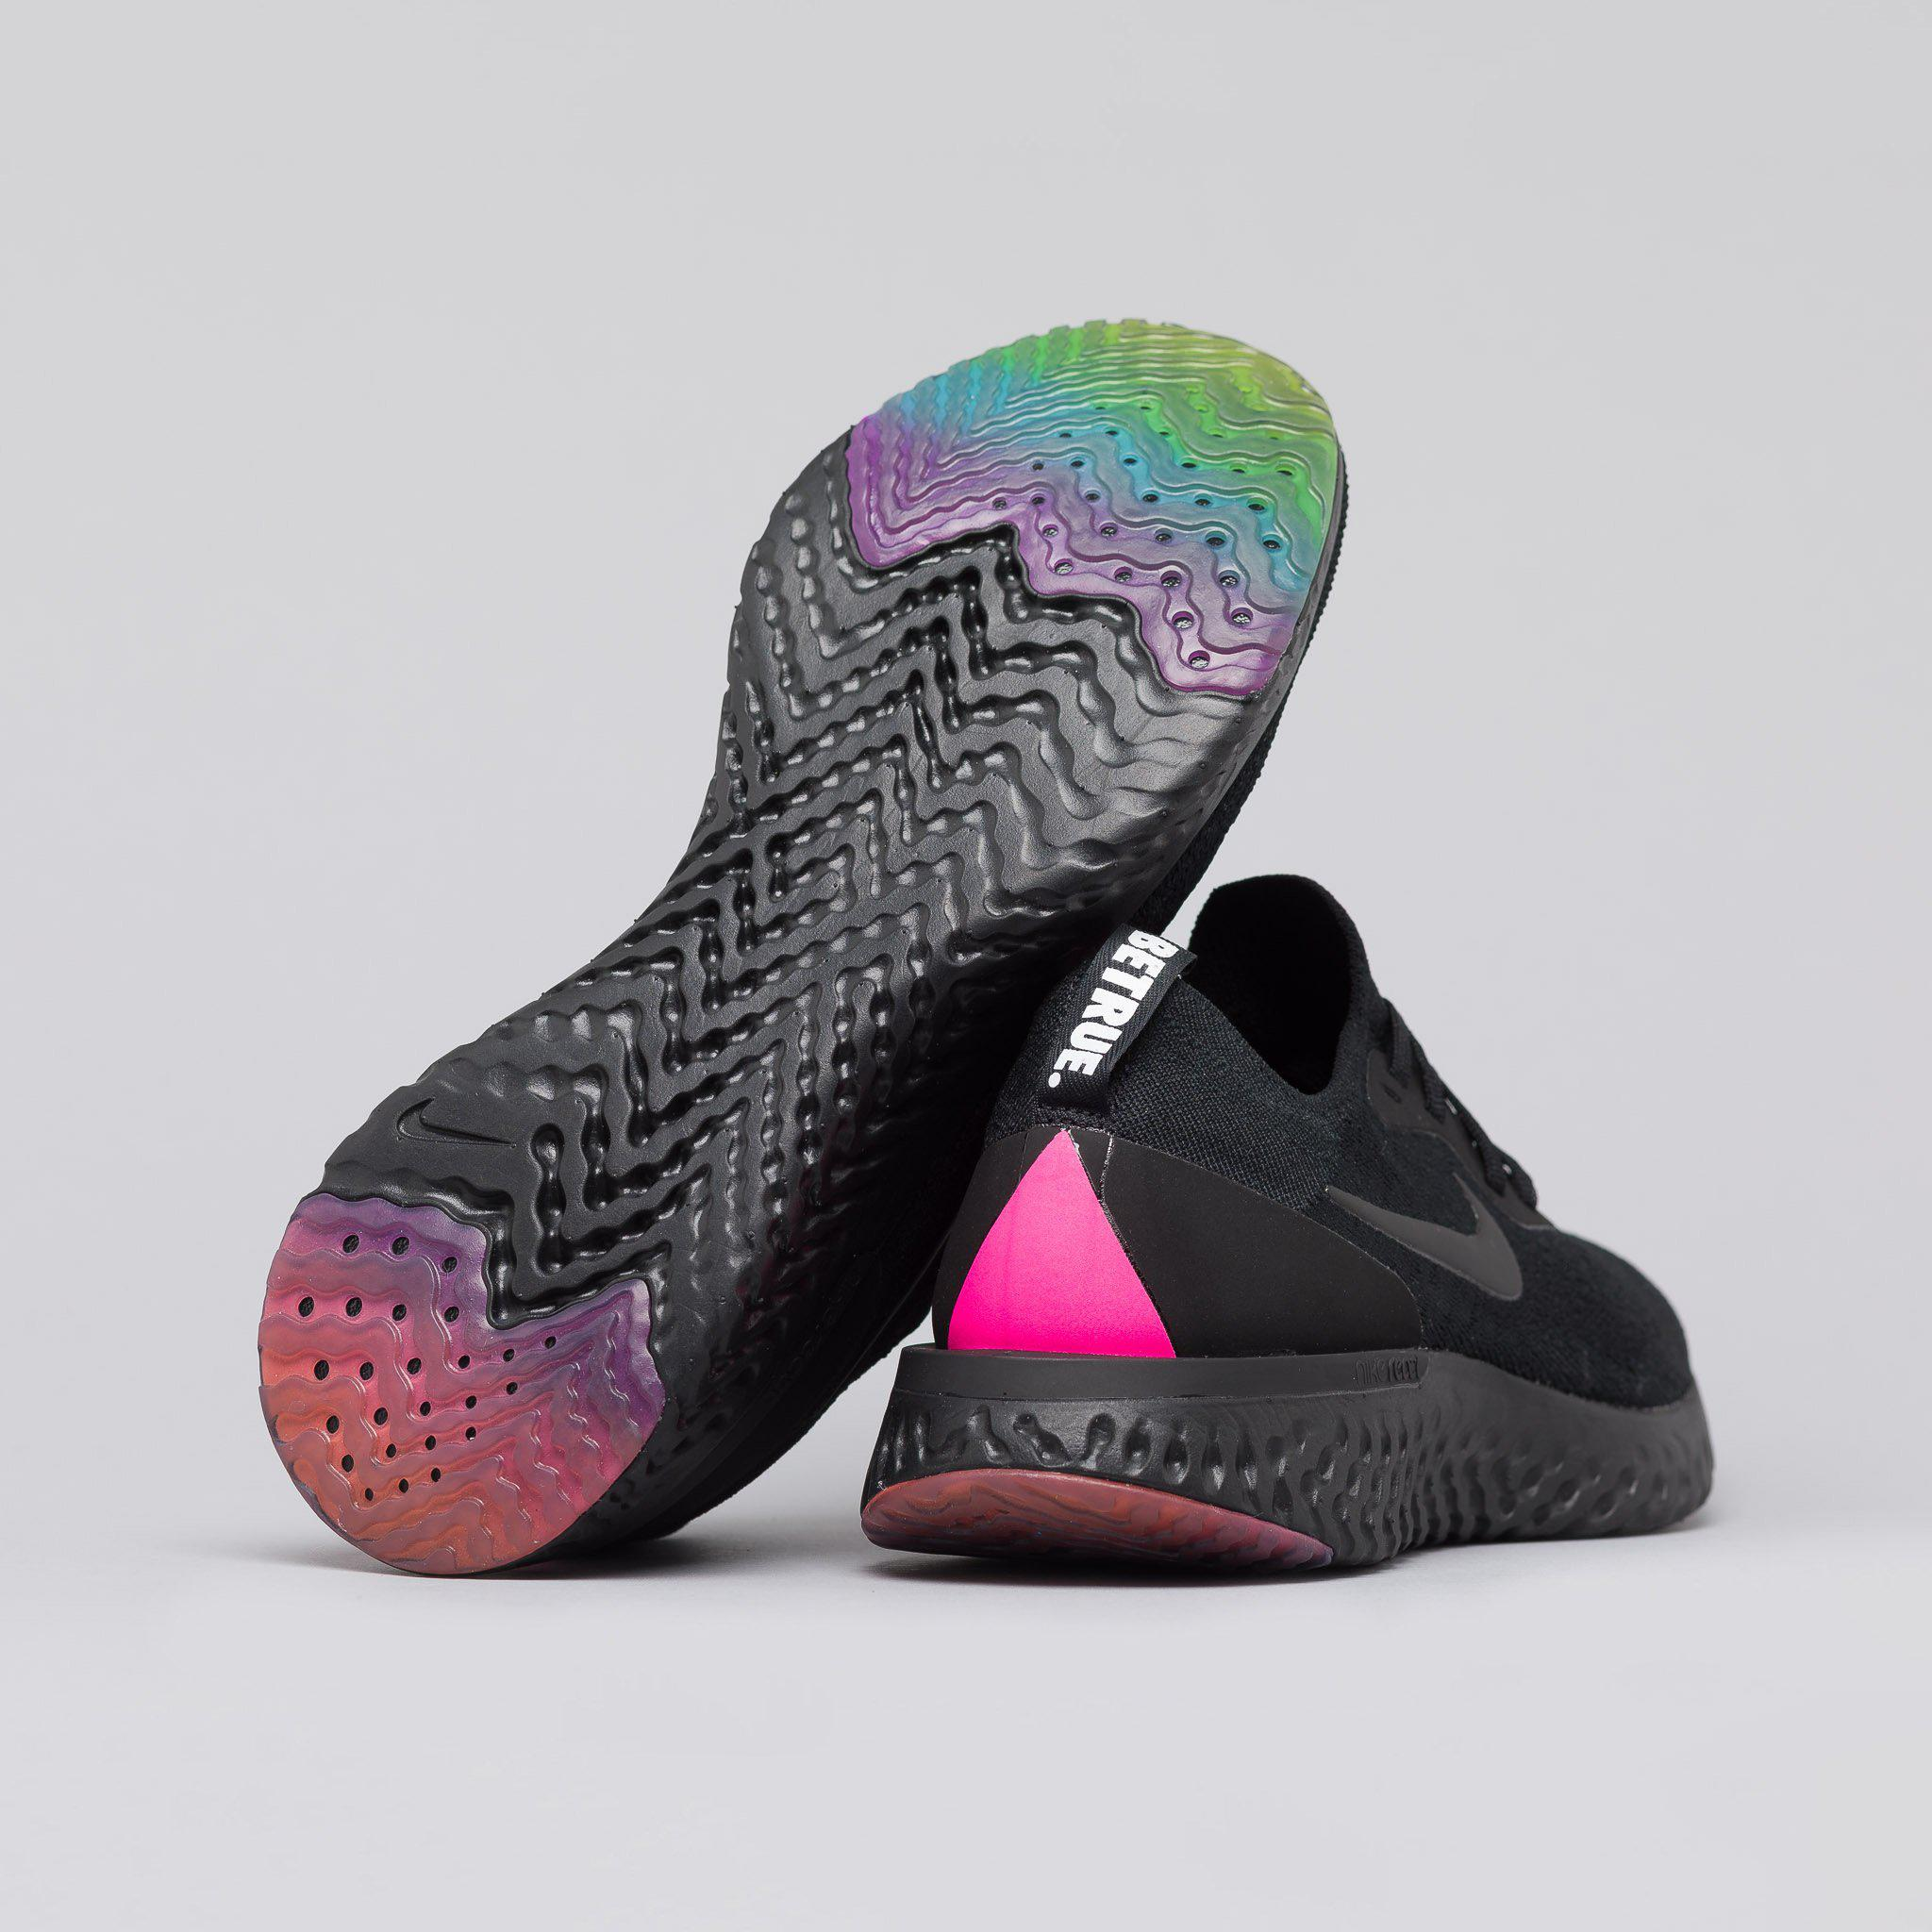 a48a7b40ab79 Lyst - Nike Epic React Flyknit Betrue In Black pink in Black for Men